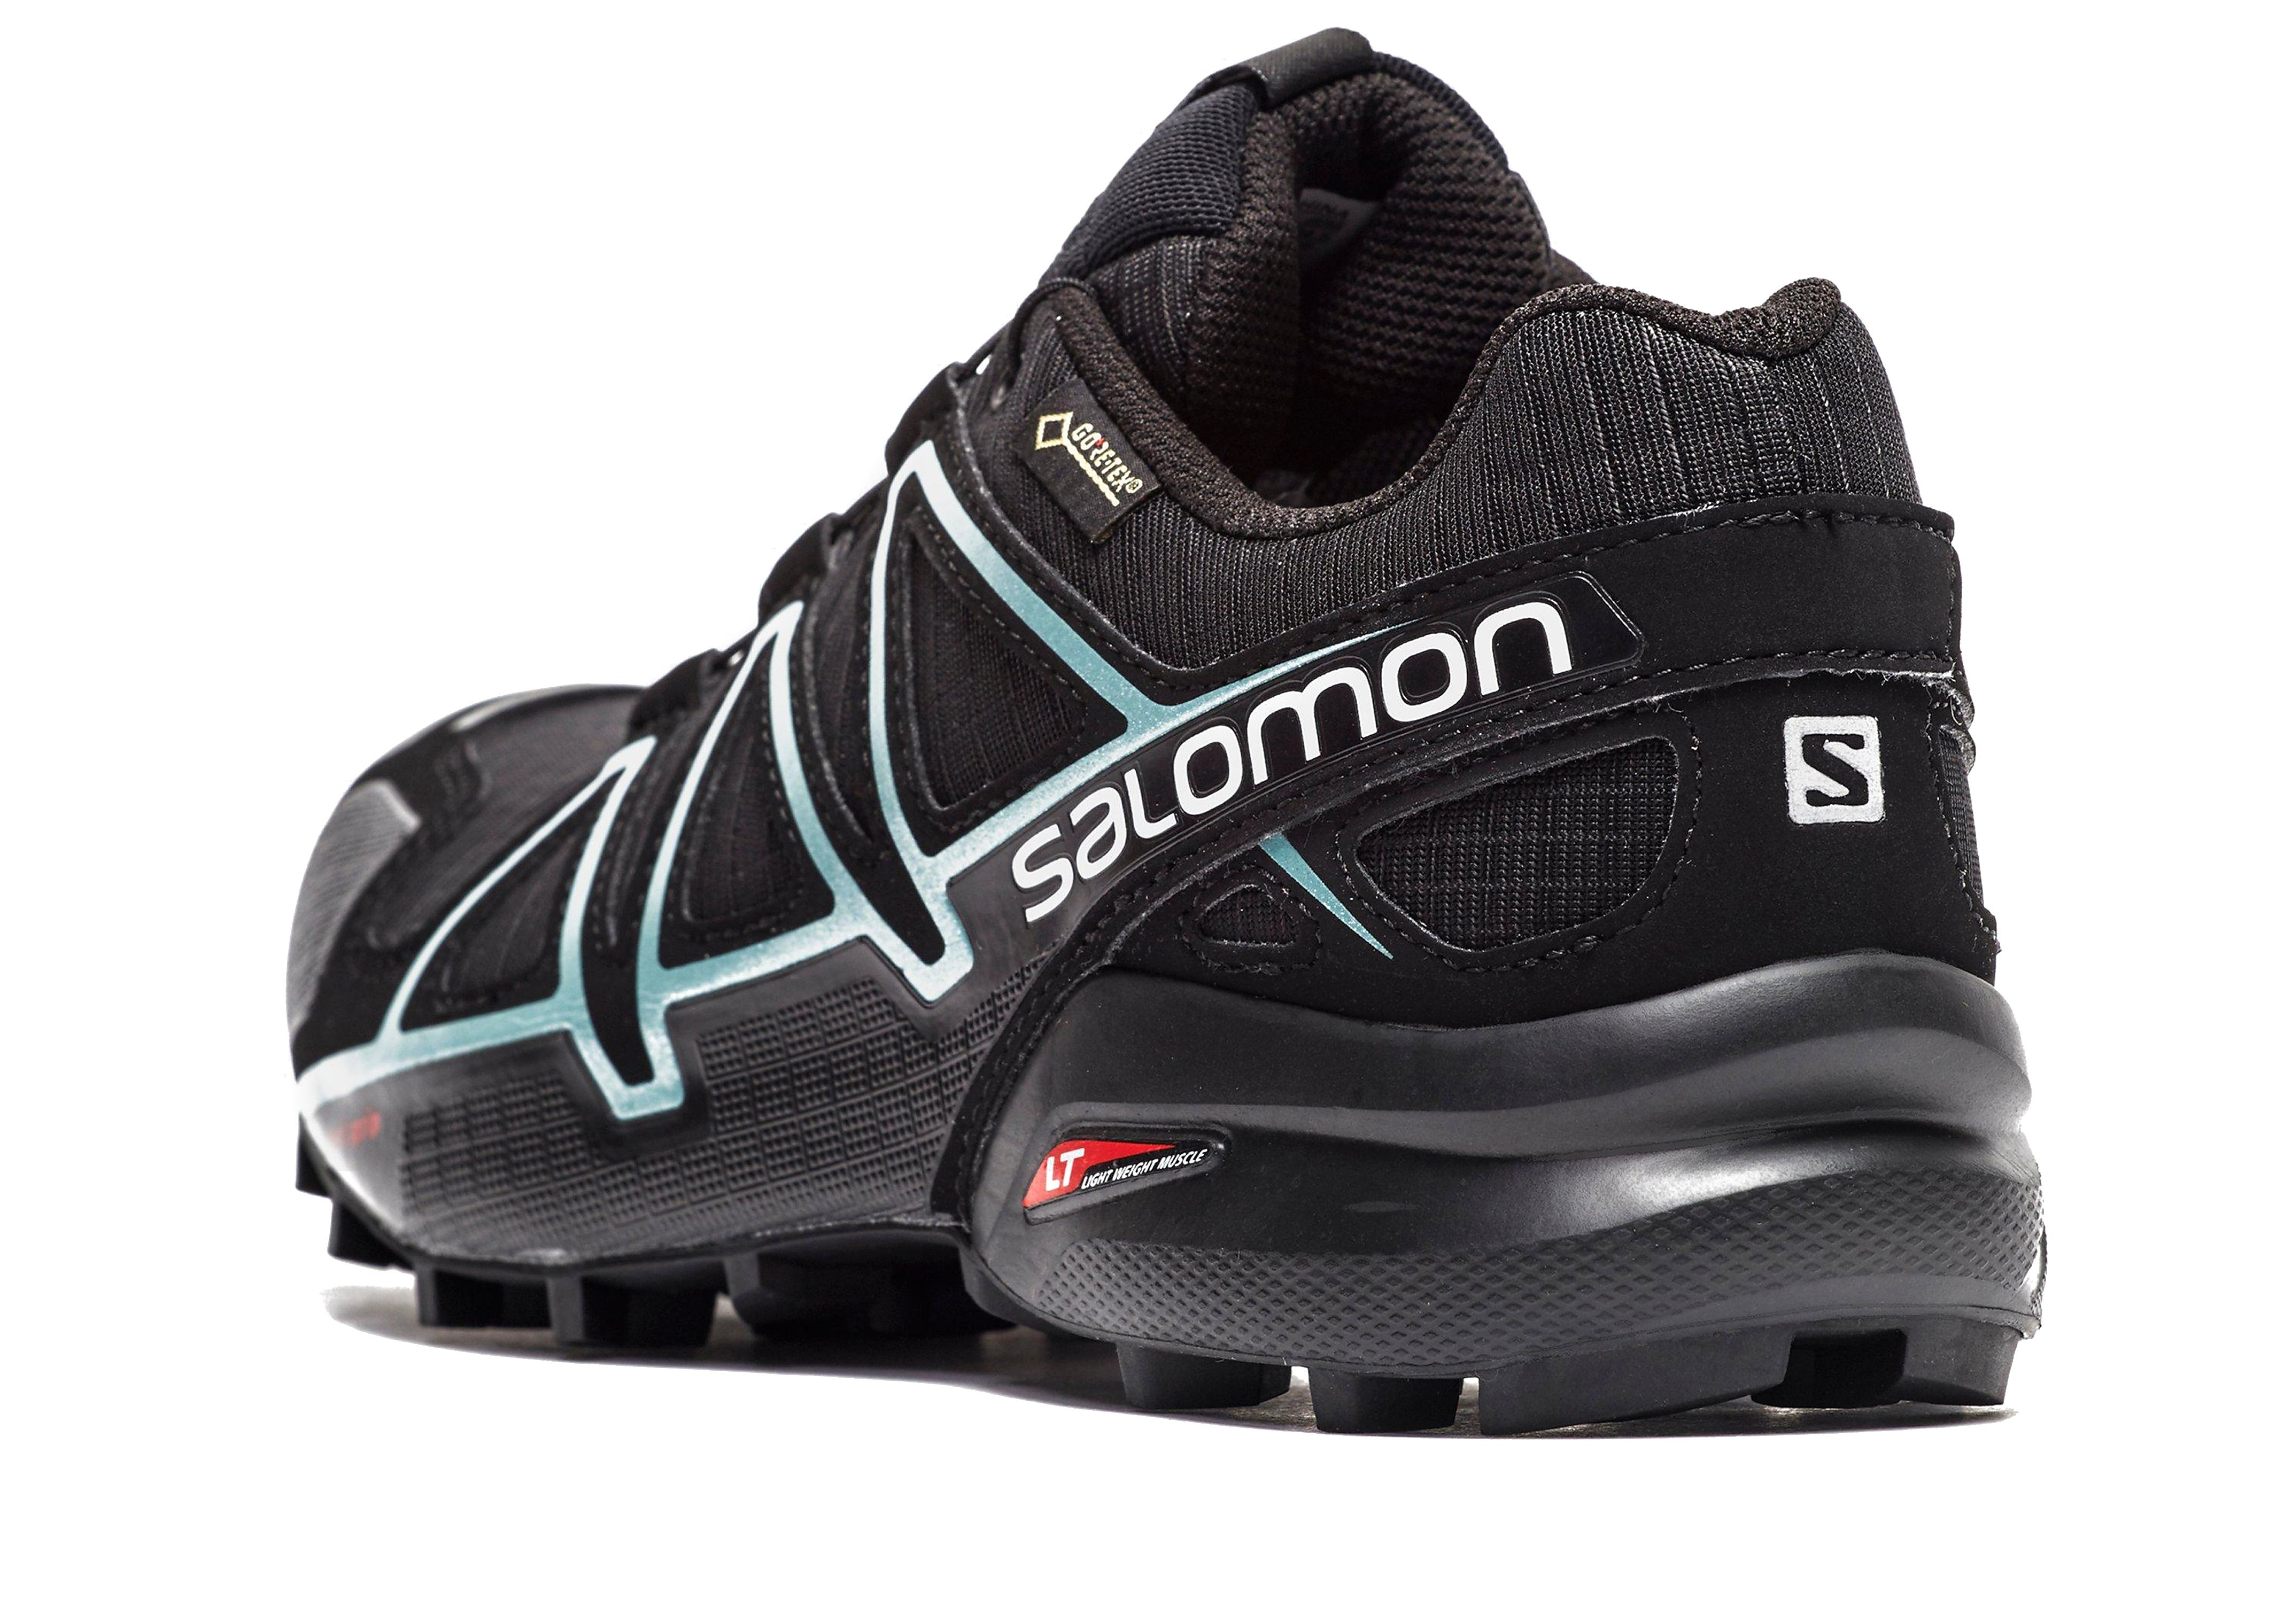 Salomon Speedcross 4 GTX Women's Trail Running Shoes